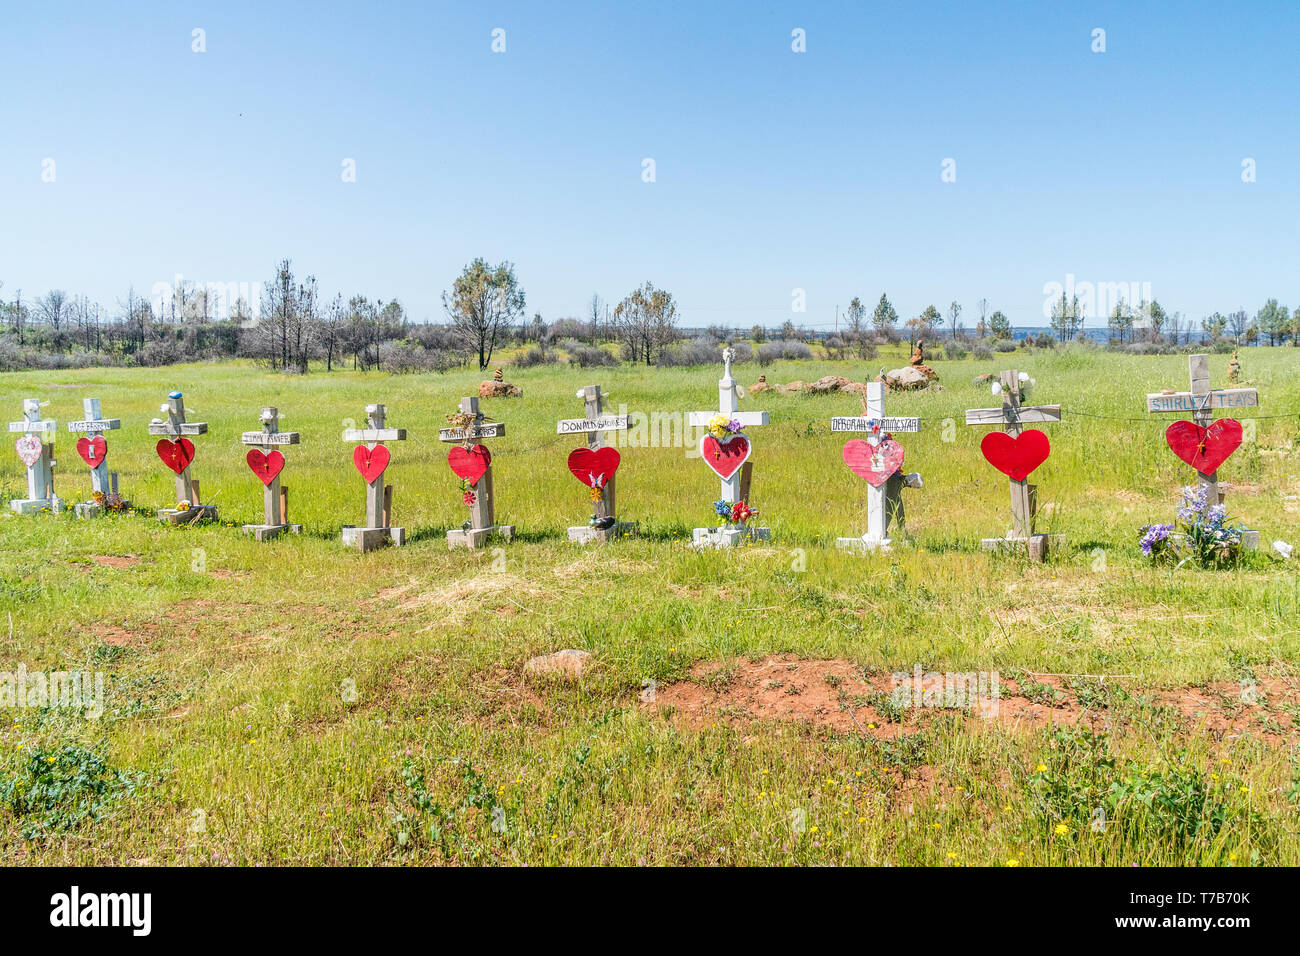 86 crosses were planted to memorialize the victims of the Camp Fire disaster in Paradise, California. The crosses were the idea of Greg Zanis, from Ch - Stock Image